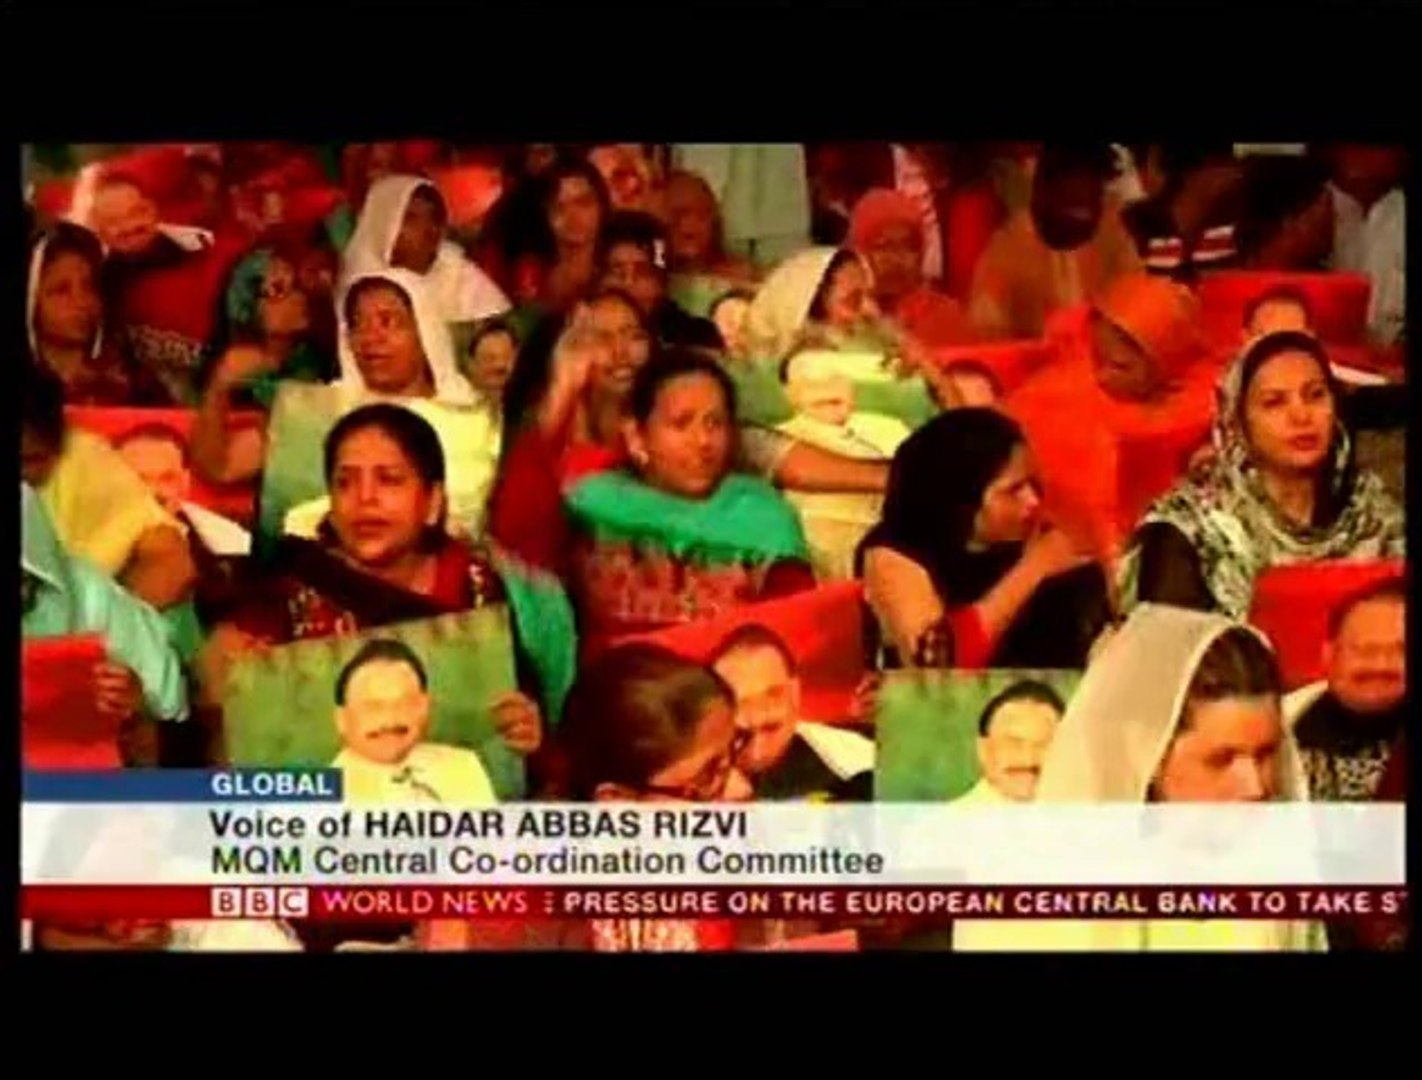 BBC World News: MQM Haider Abbas Rizvi on the News of arrest of Mr Altaf Hussain In London